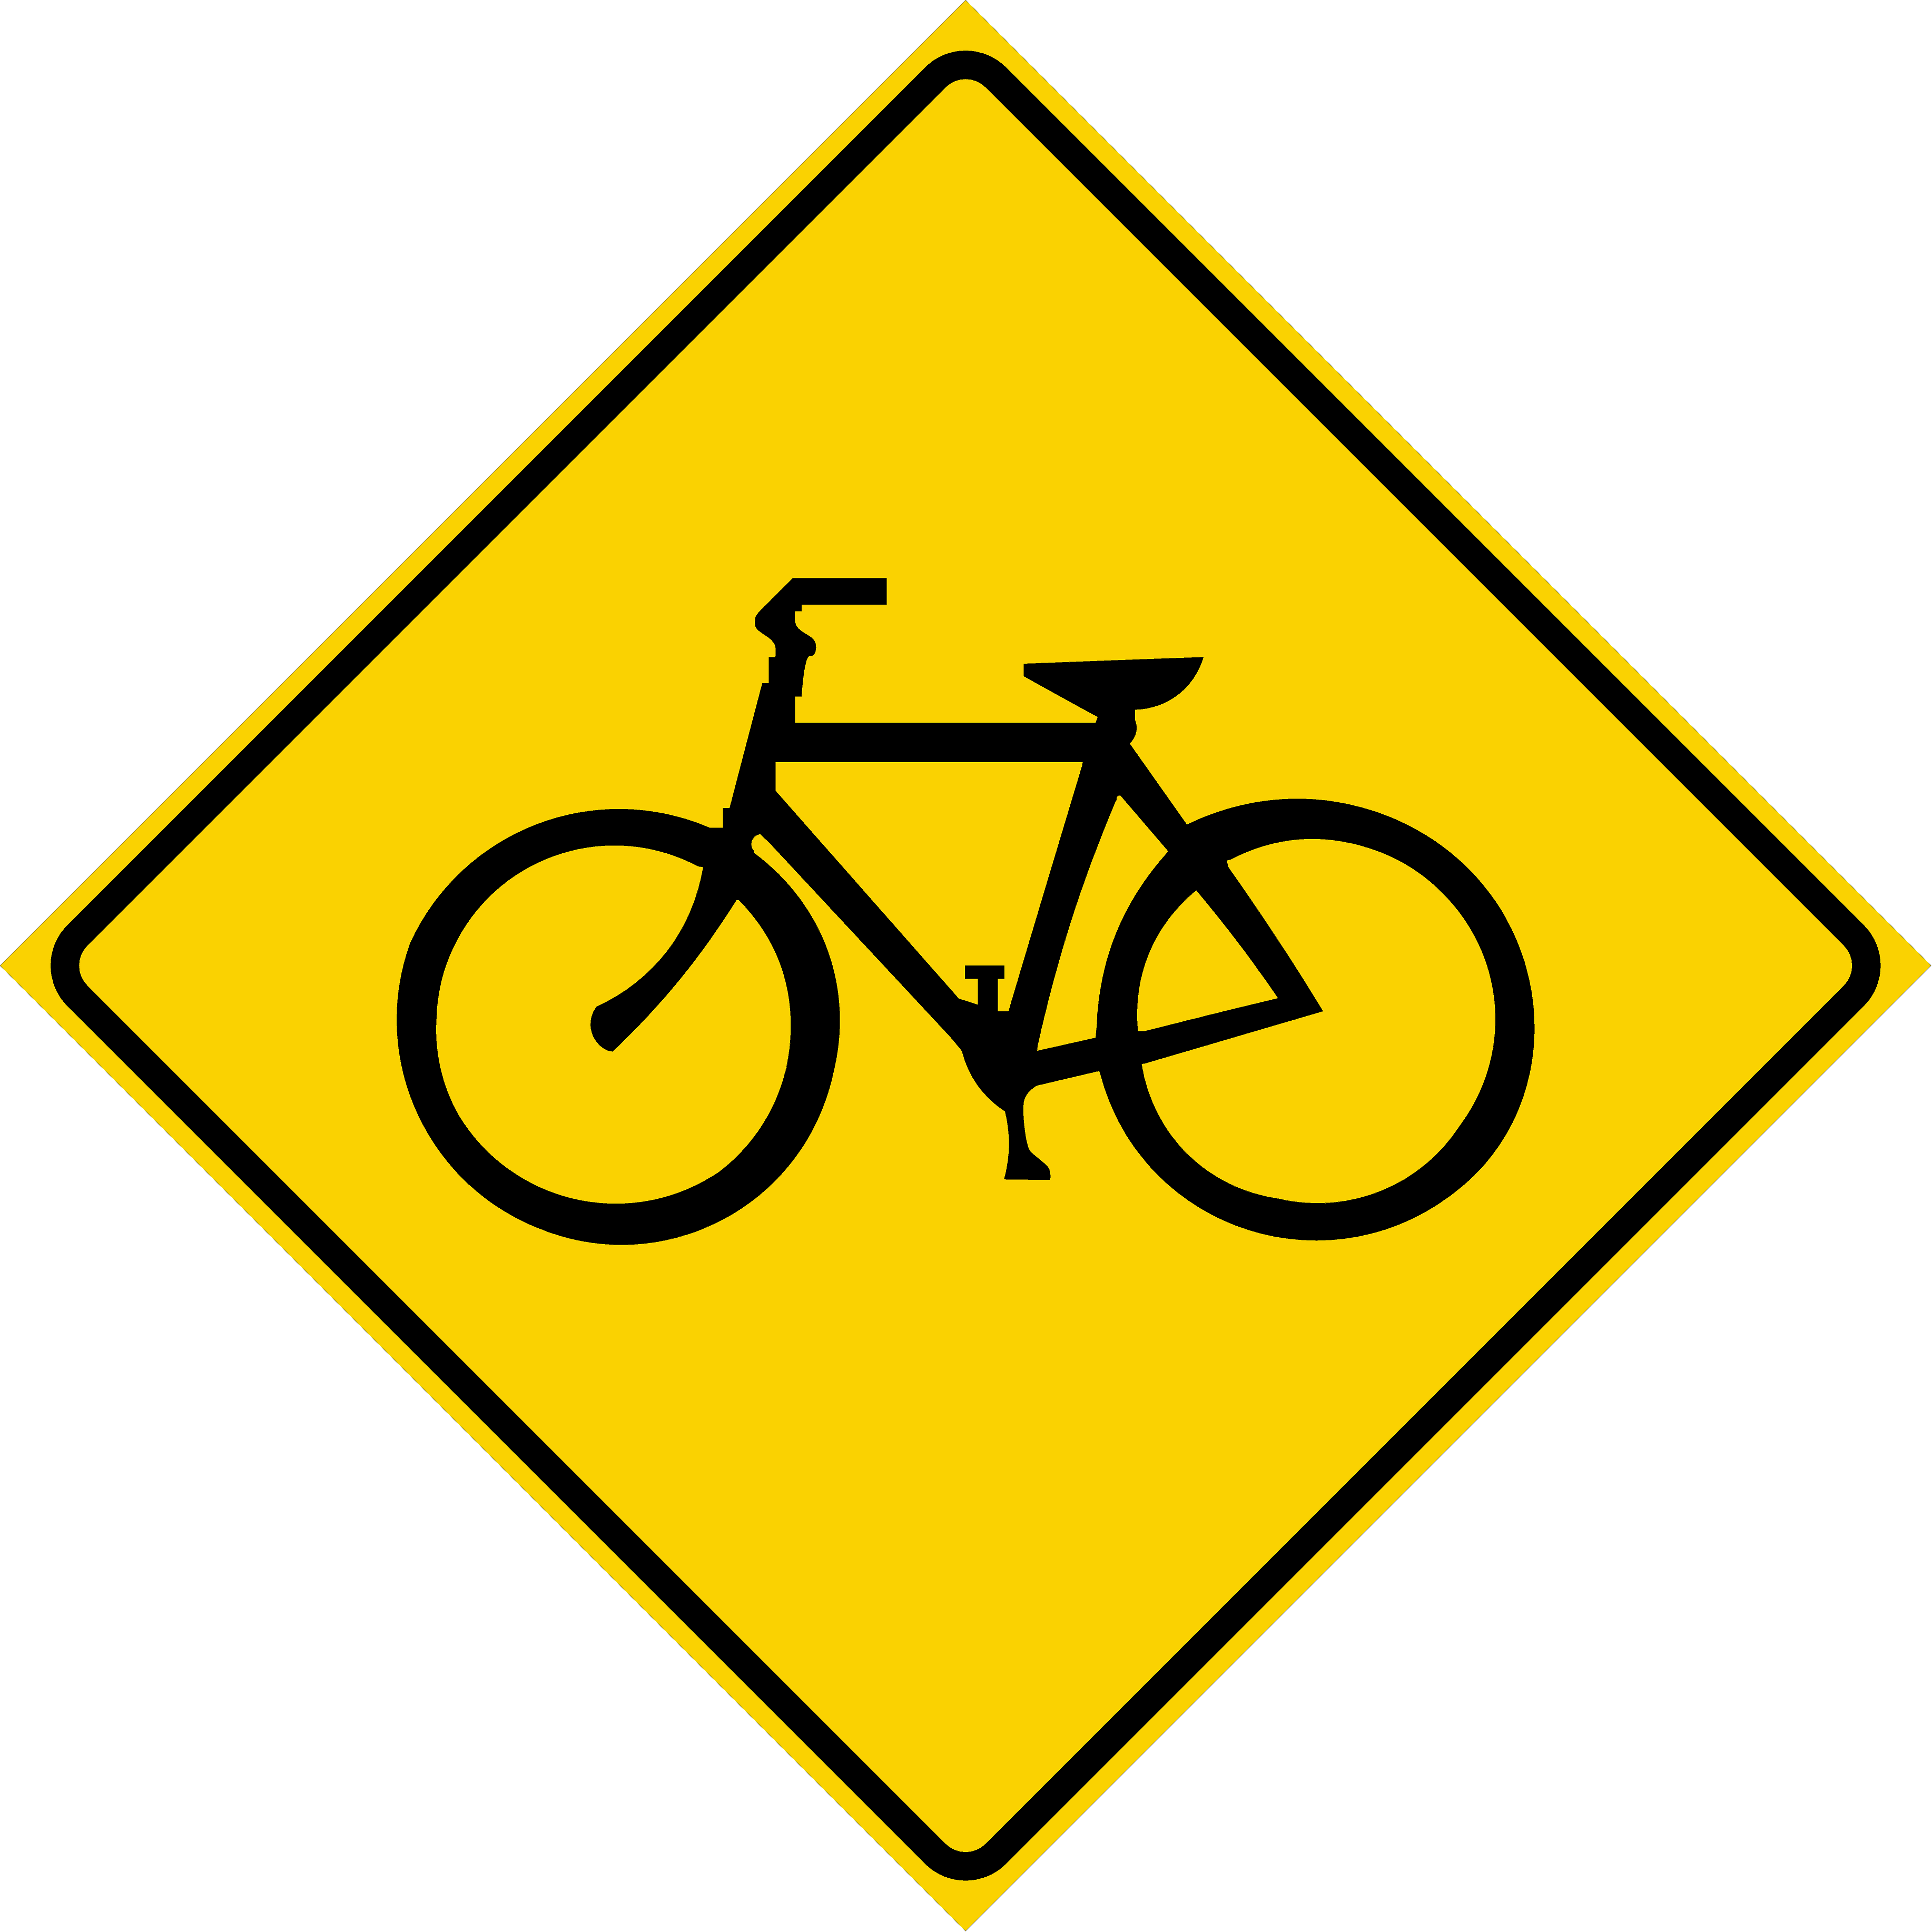 Bicycle Crossing Symbol (W11-1)